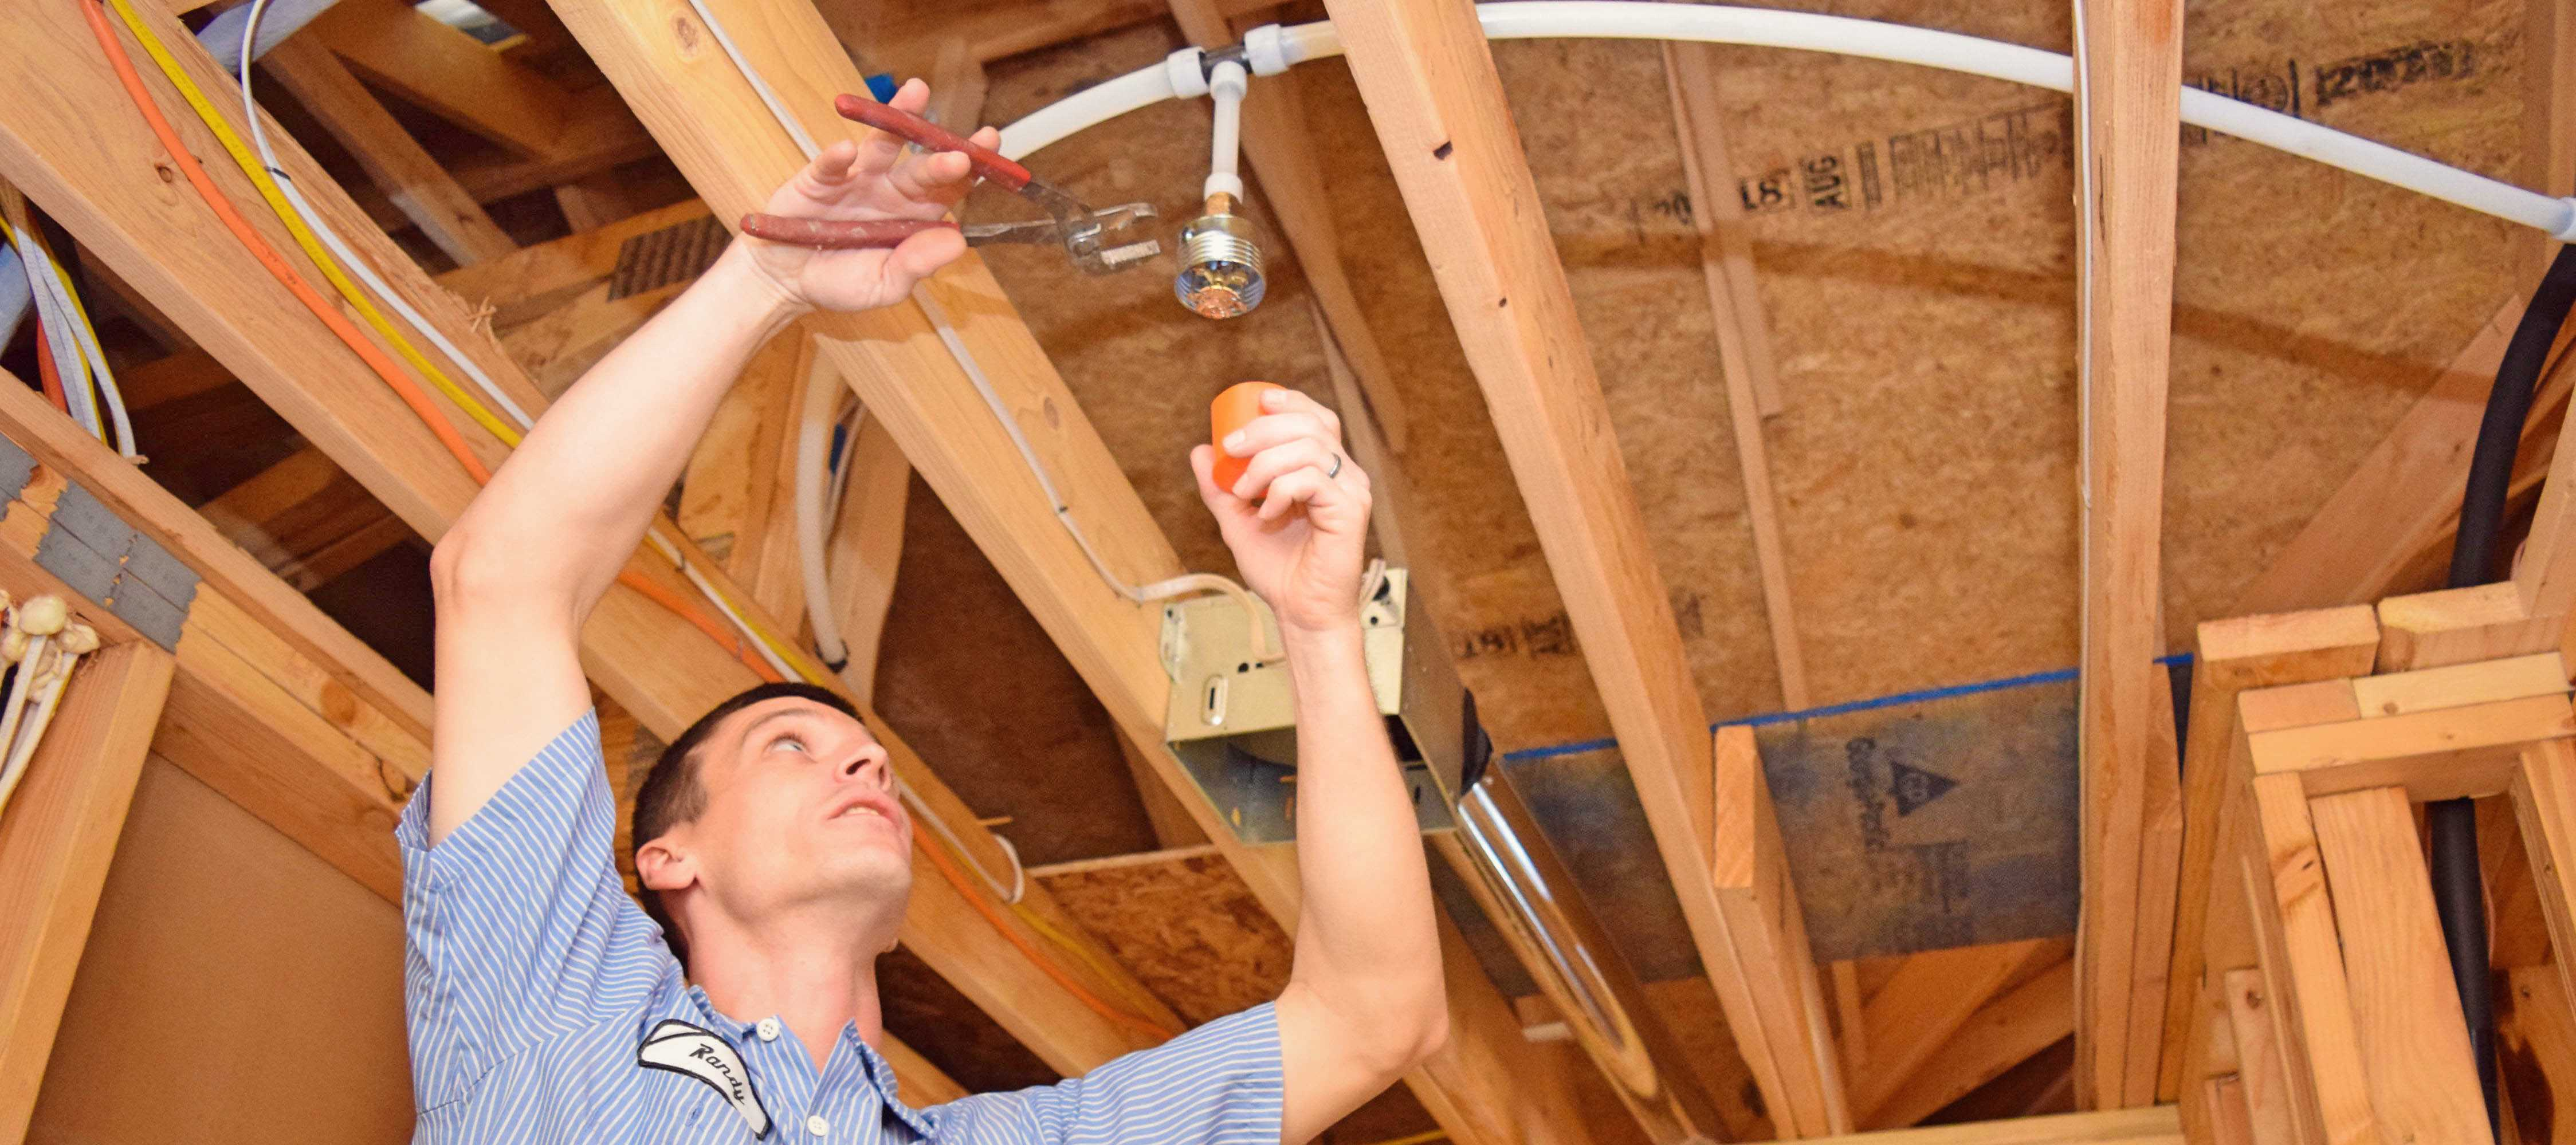 Remodeling – Best Plumbing Services in Springfield Missouri